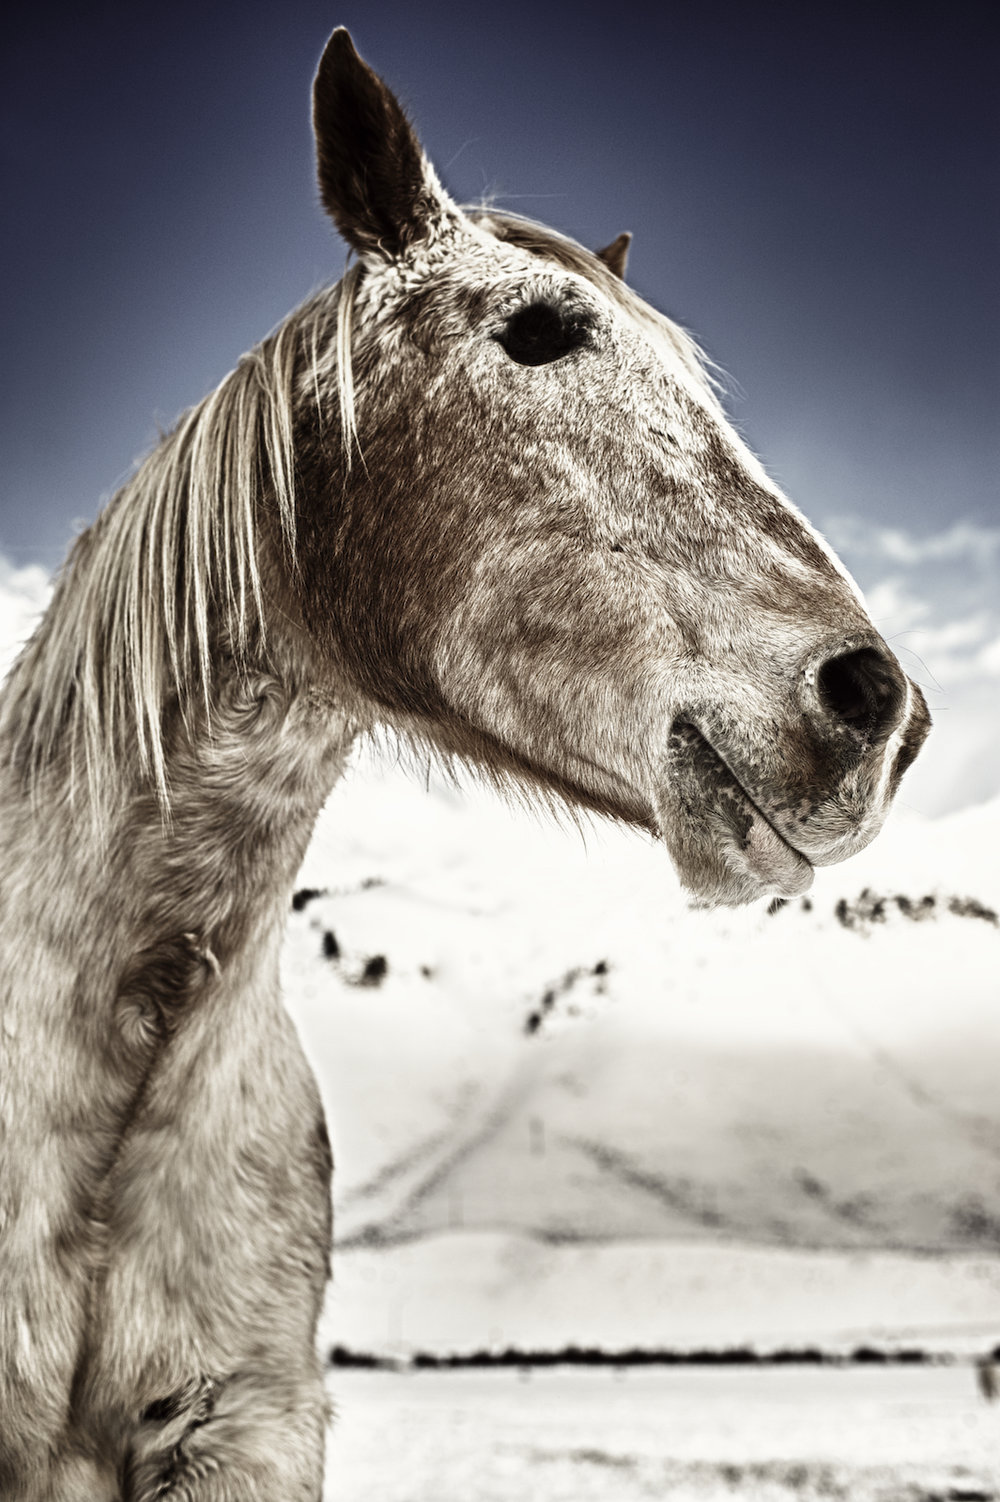 A horse is missing an eye in Jackson Hole, Wyoming.  Image by New Orleans based travel photographer, Marc Pagani